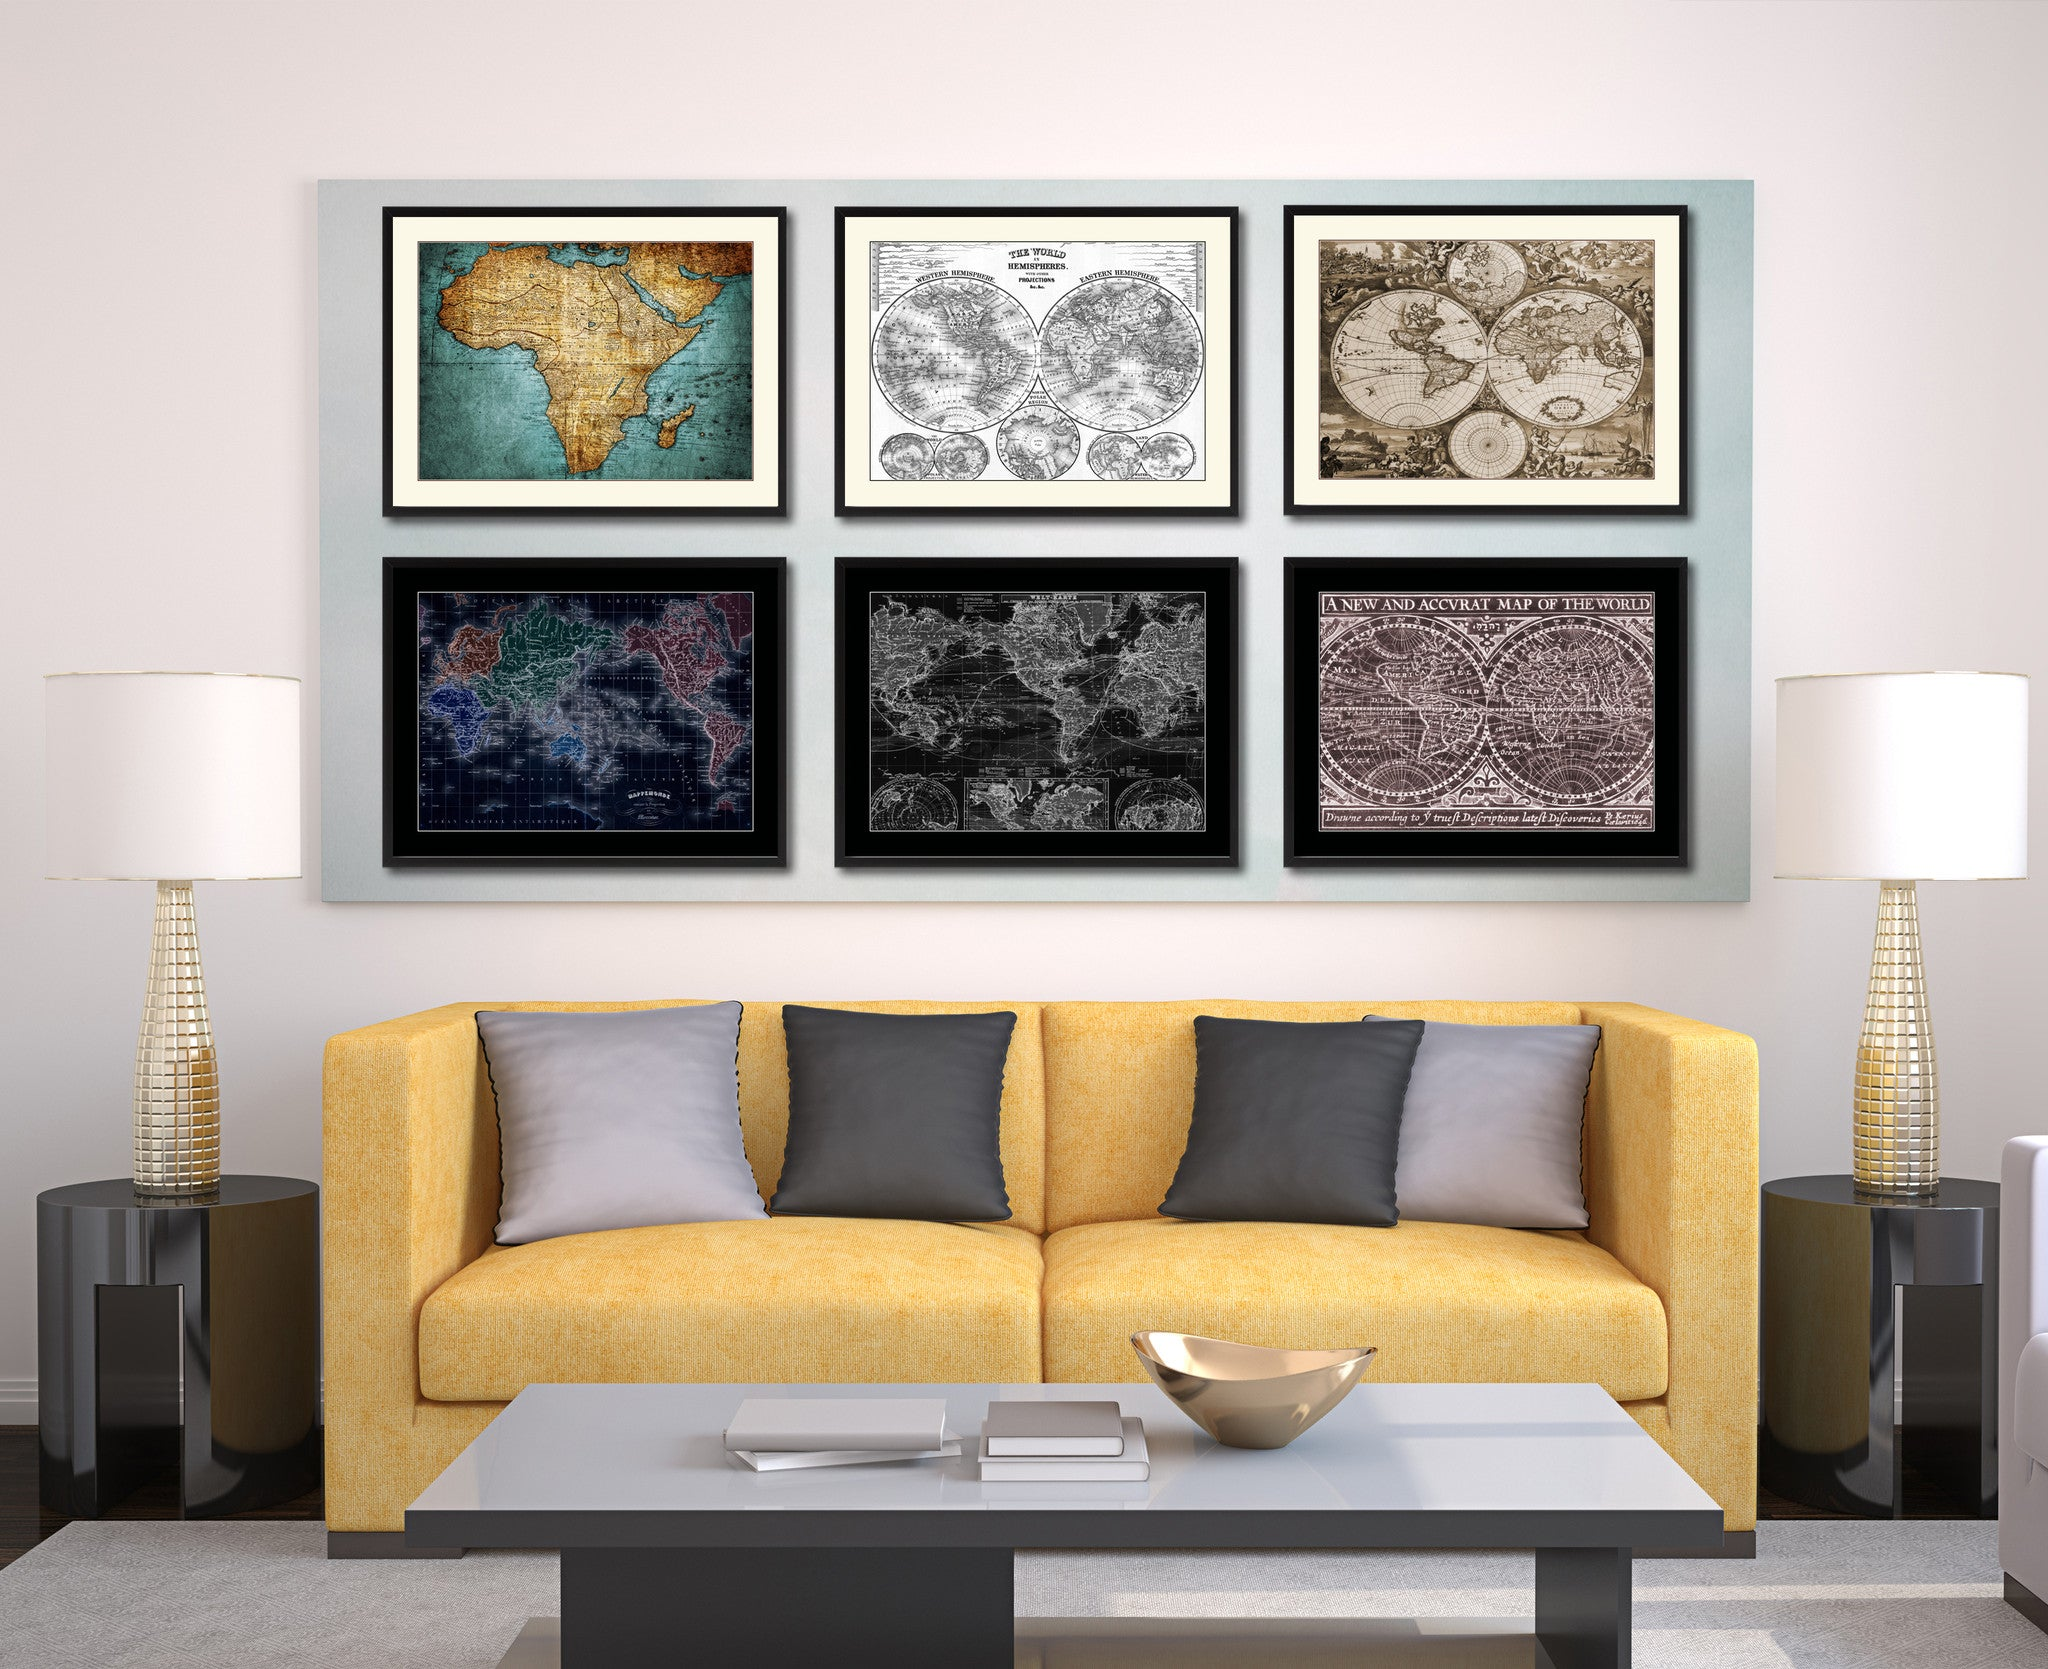 World Hemispheres Vintage Sepia Map Canvas Print Picture Frame Gifts Home Decor Wall Art Decoration